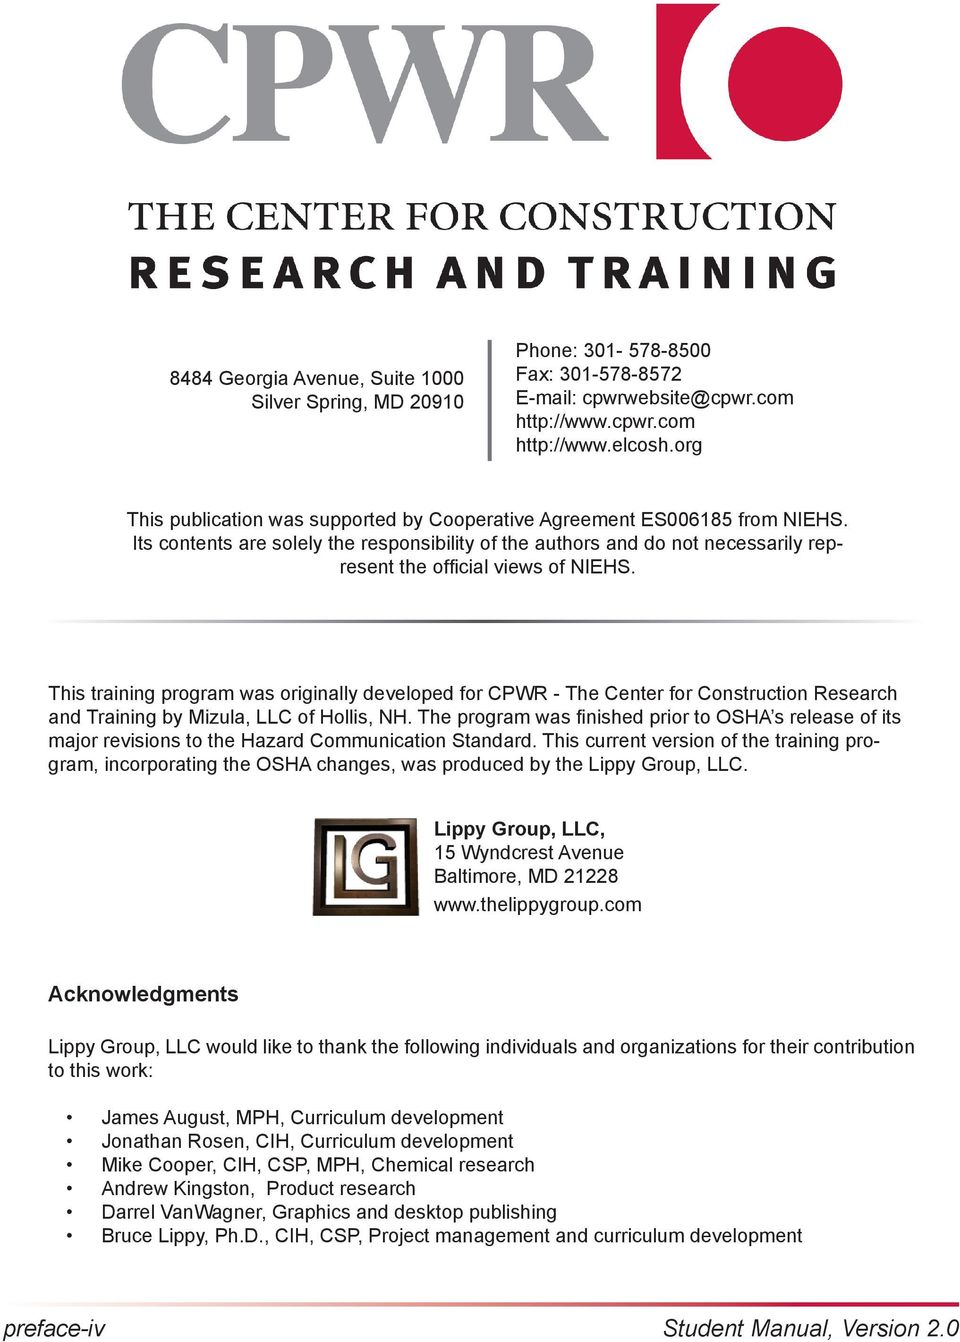 This training program was originally developed for CPWR - The Center for Construction Research and Training by Mizula, LLC of Hollis, NH.